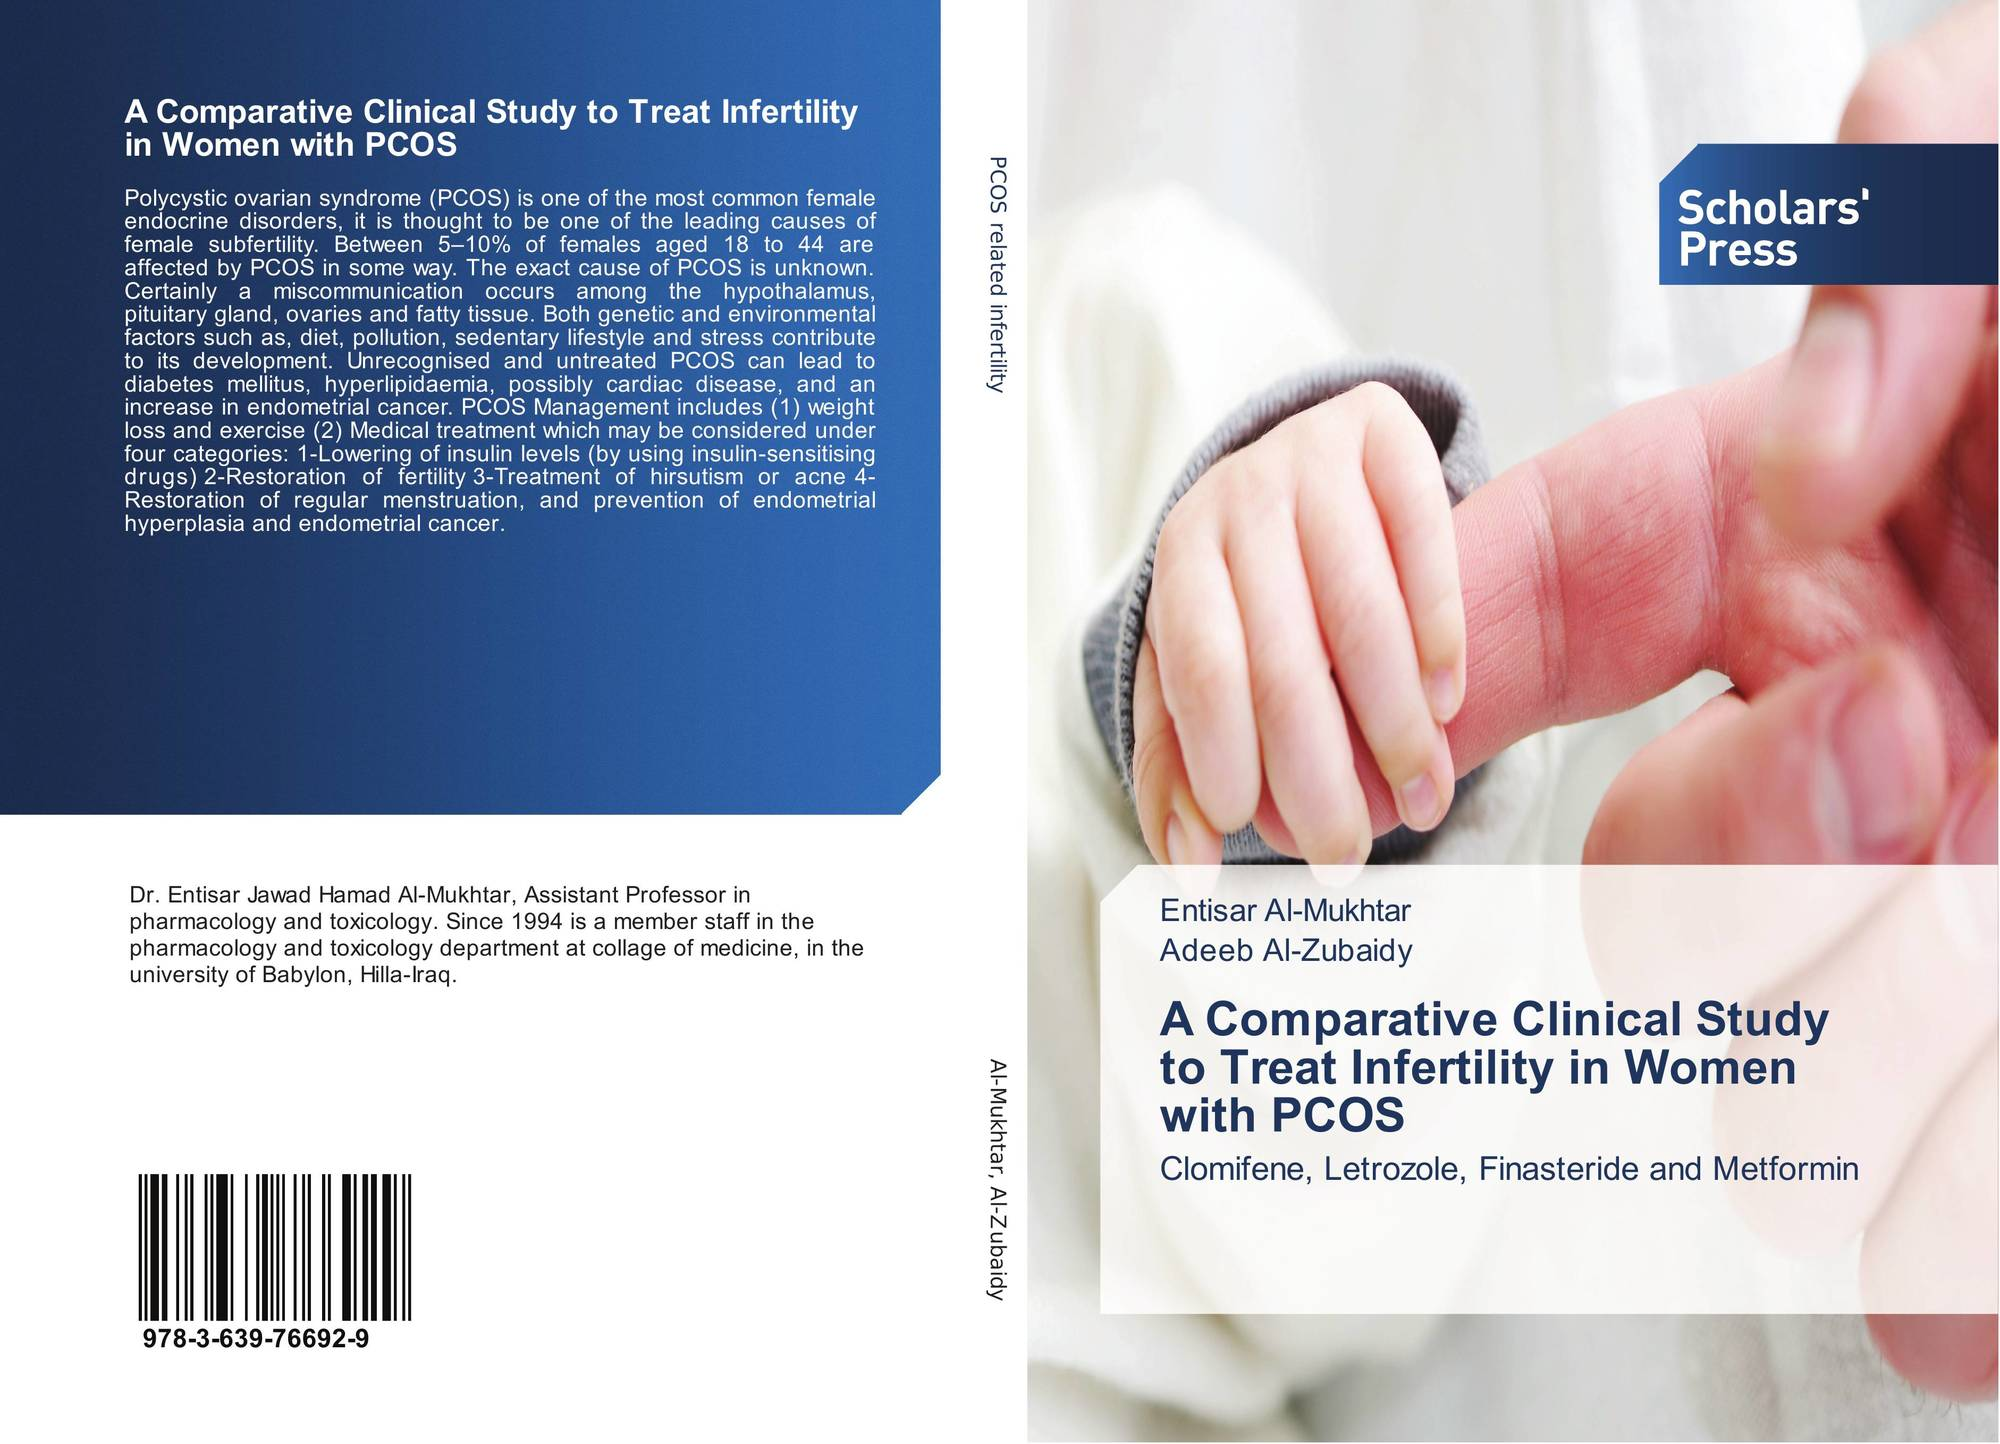 A Comparative Clinical Study To Treat Infertility In Women With Pcos 978 3 639 76692 9 363976692x 9783639766929 By Entisar Al Mukhtar Adeeb Al Zubaidy